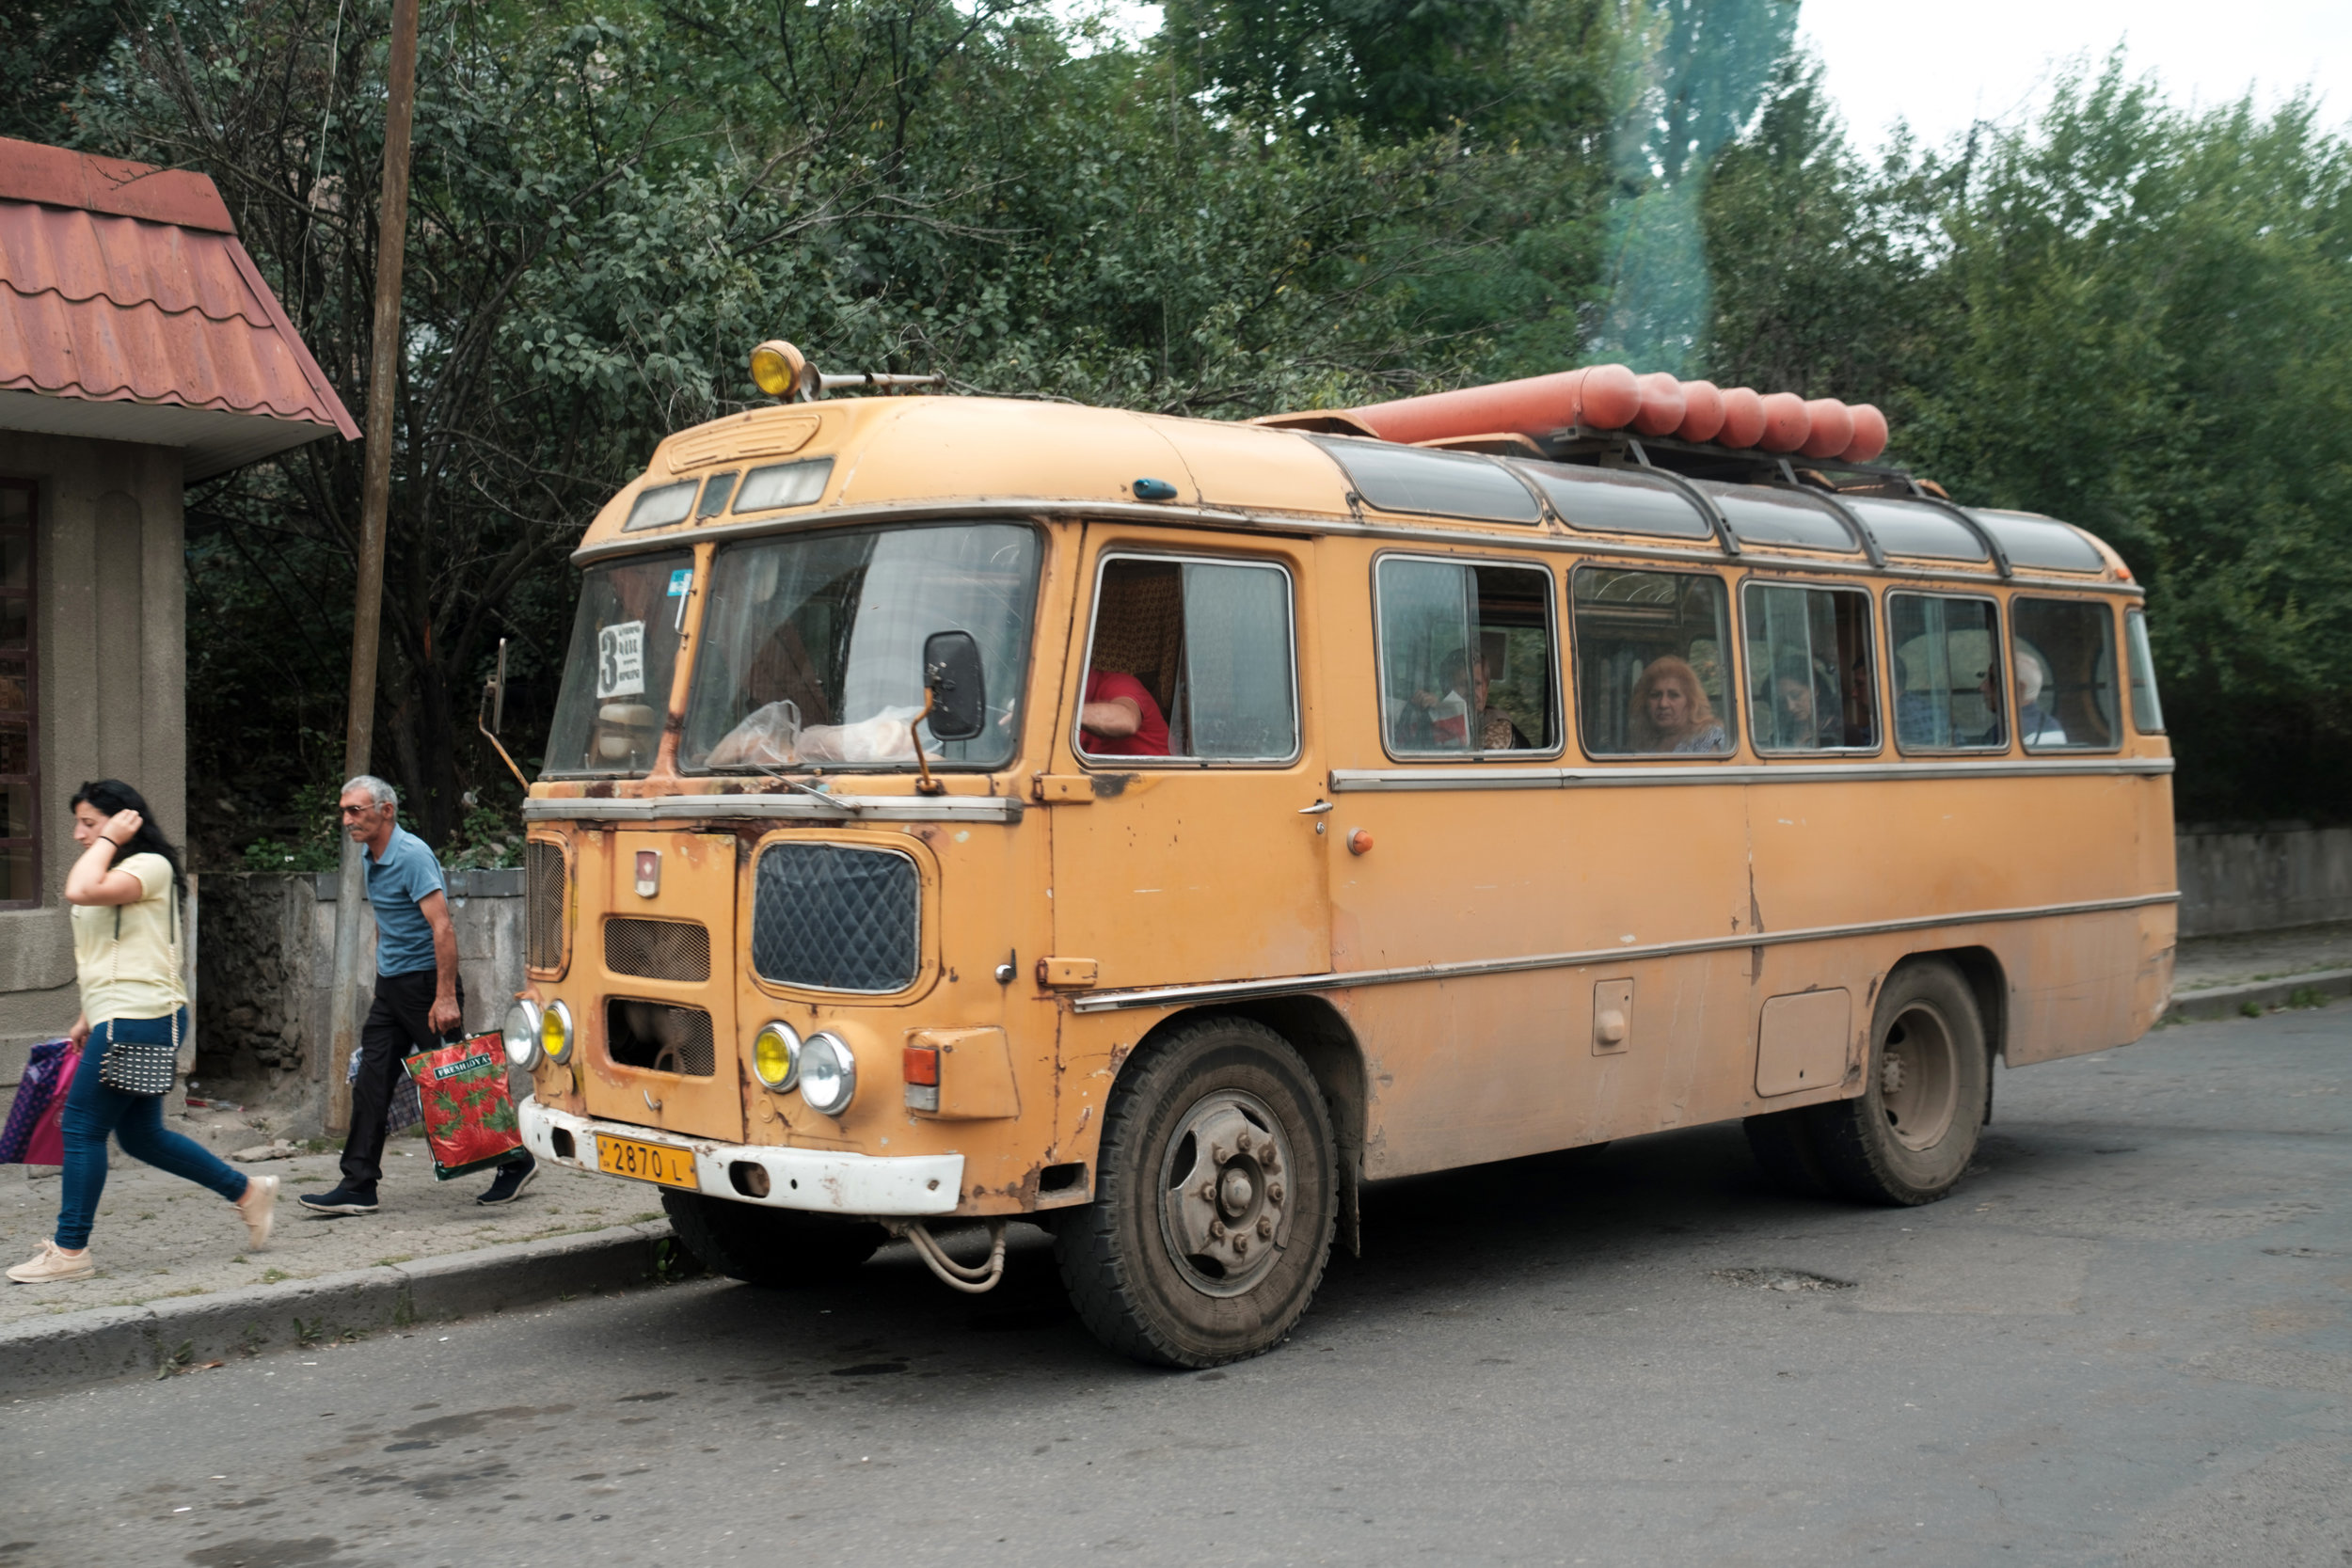 A commuter bus in Northern Armenia